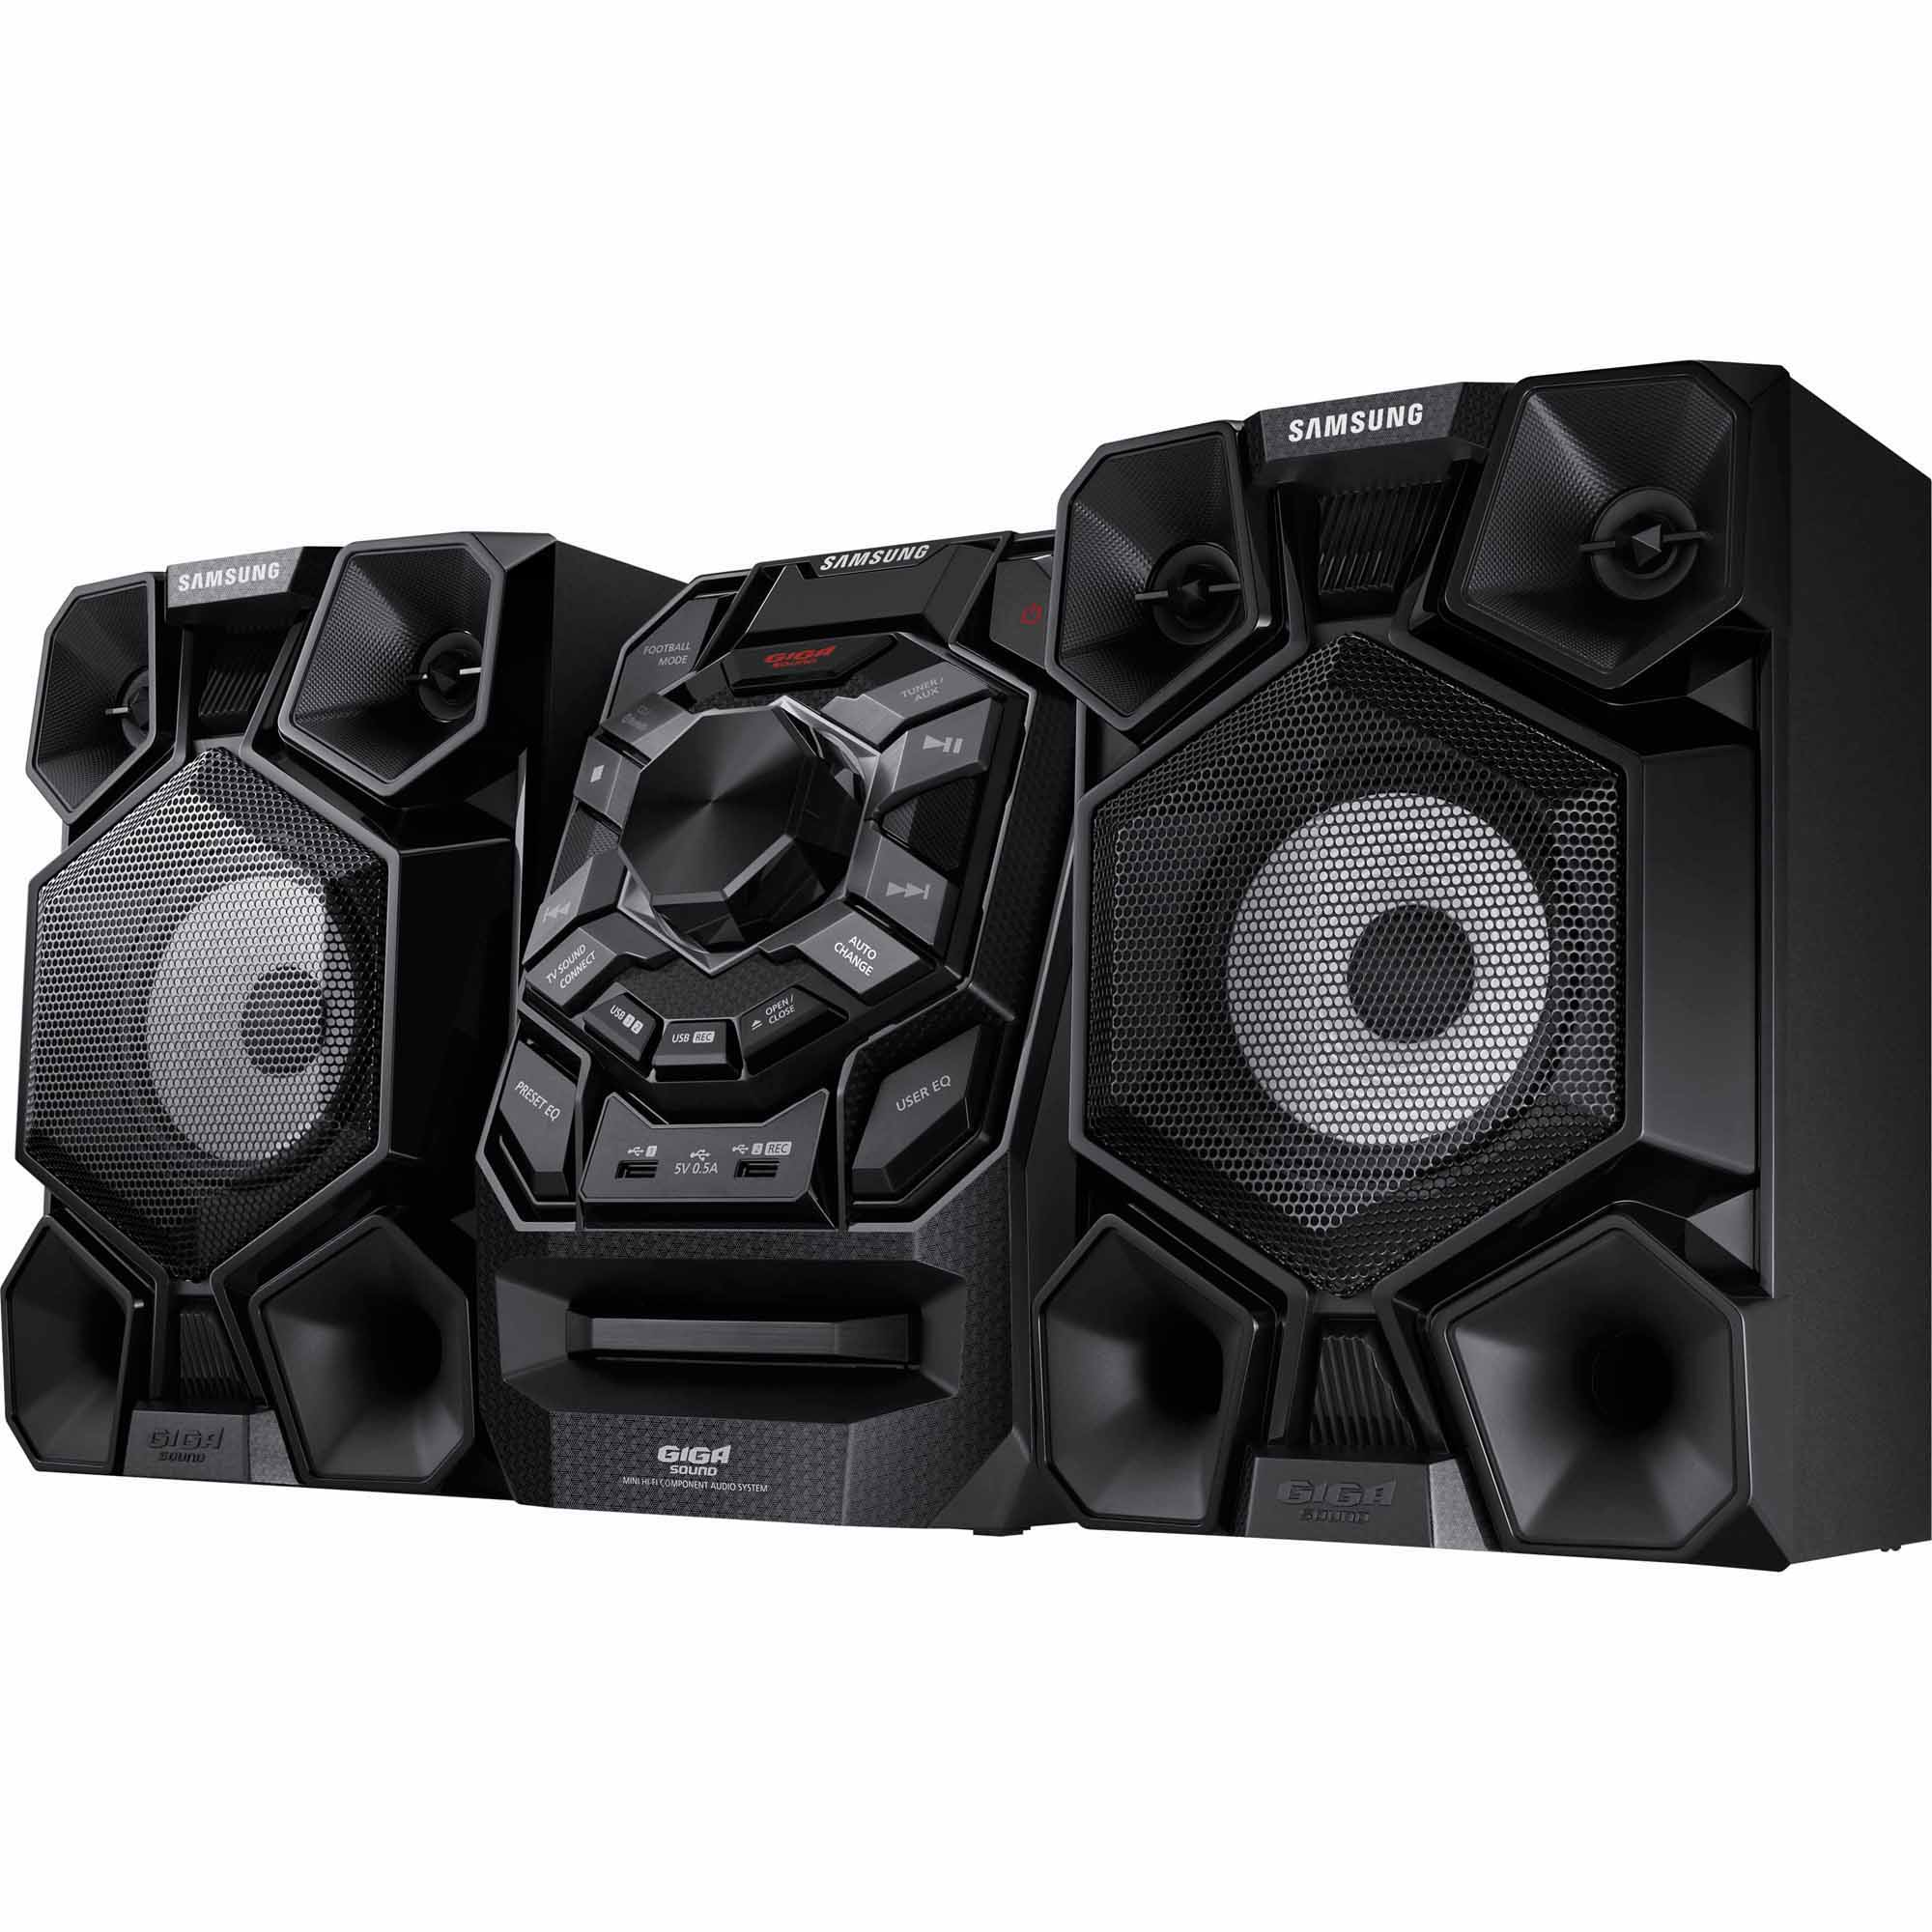 Samsung 2-Channel 230W Giga Sound System - MX-J630